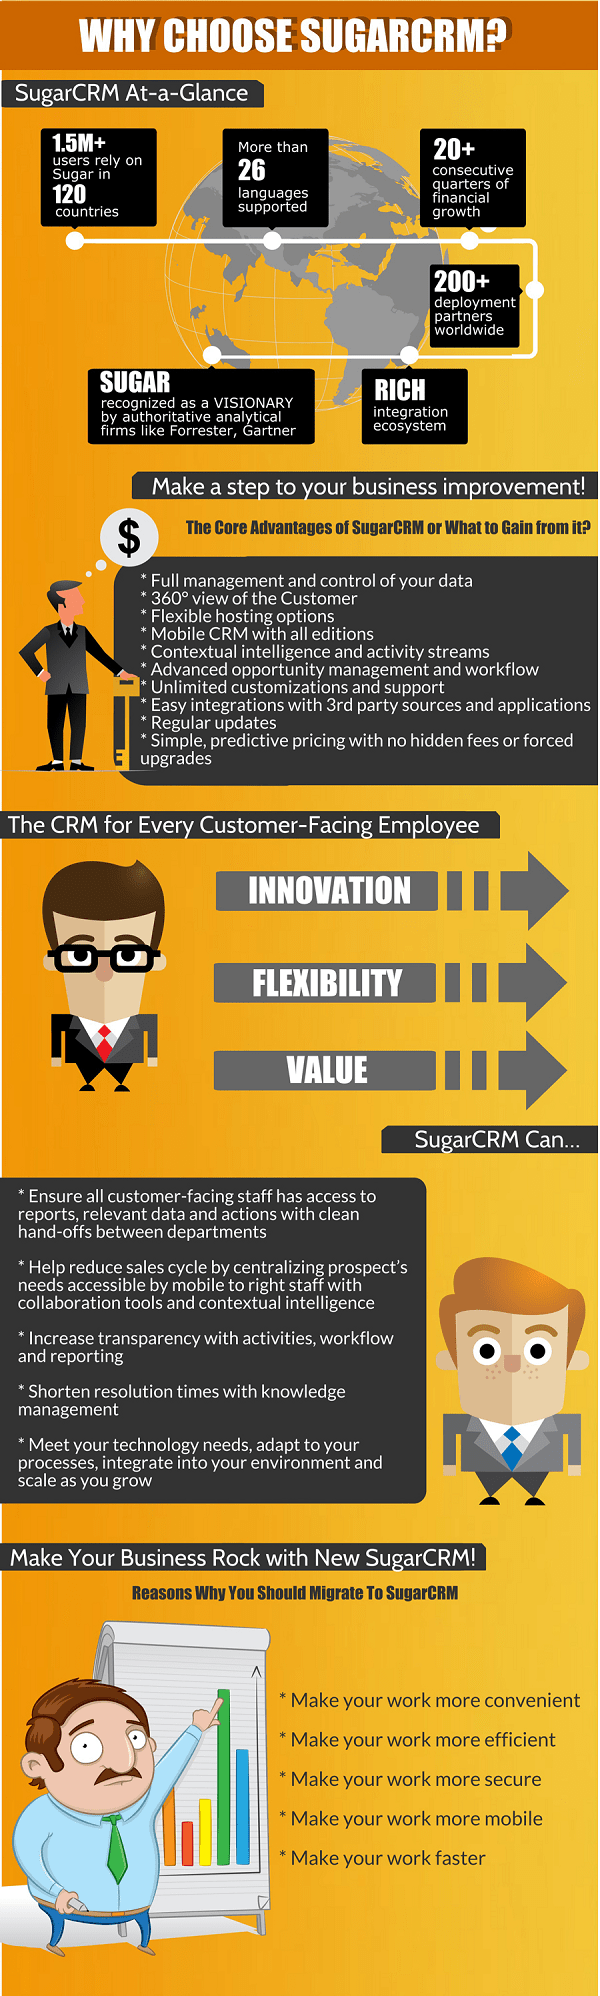 Why Choose SugarCRM? [Infographic]